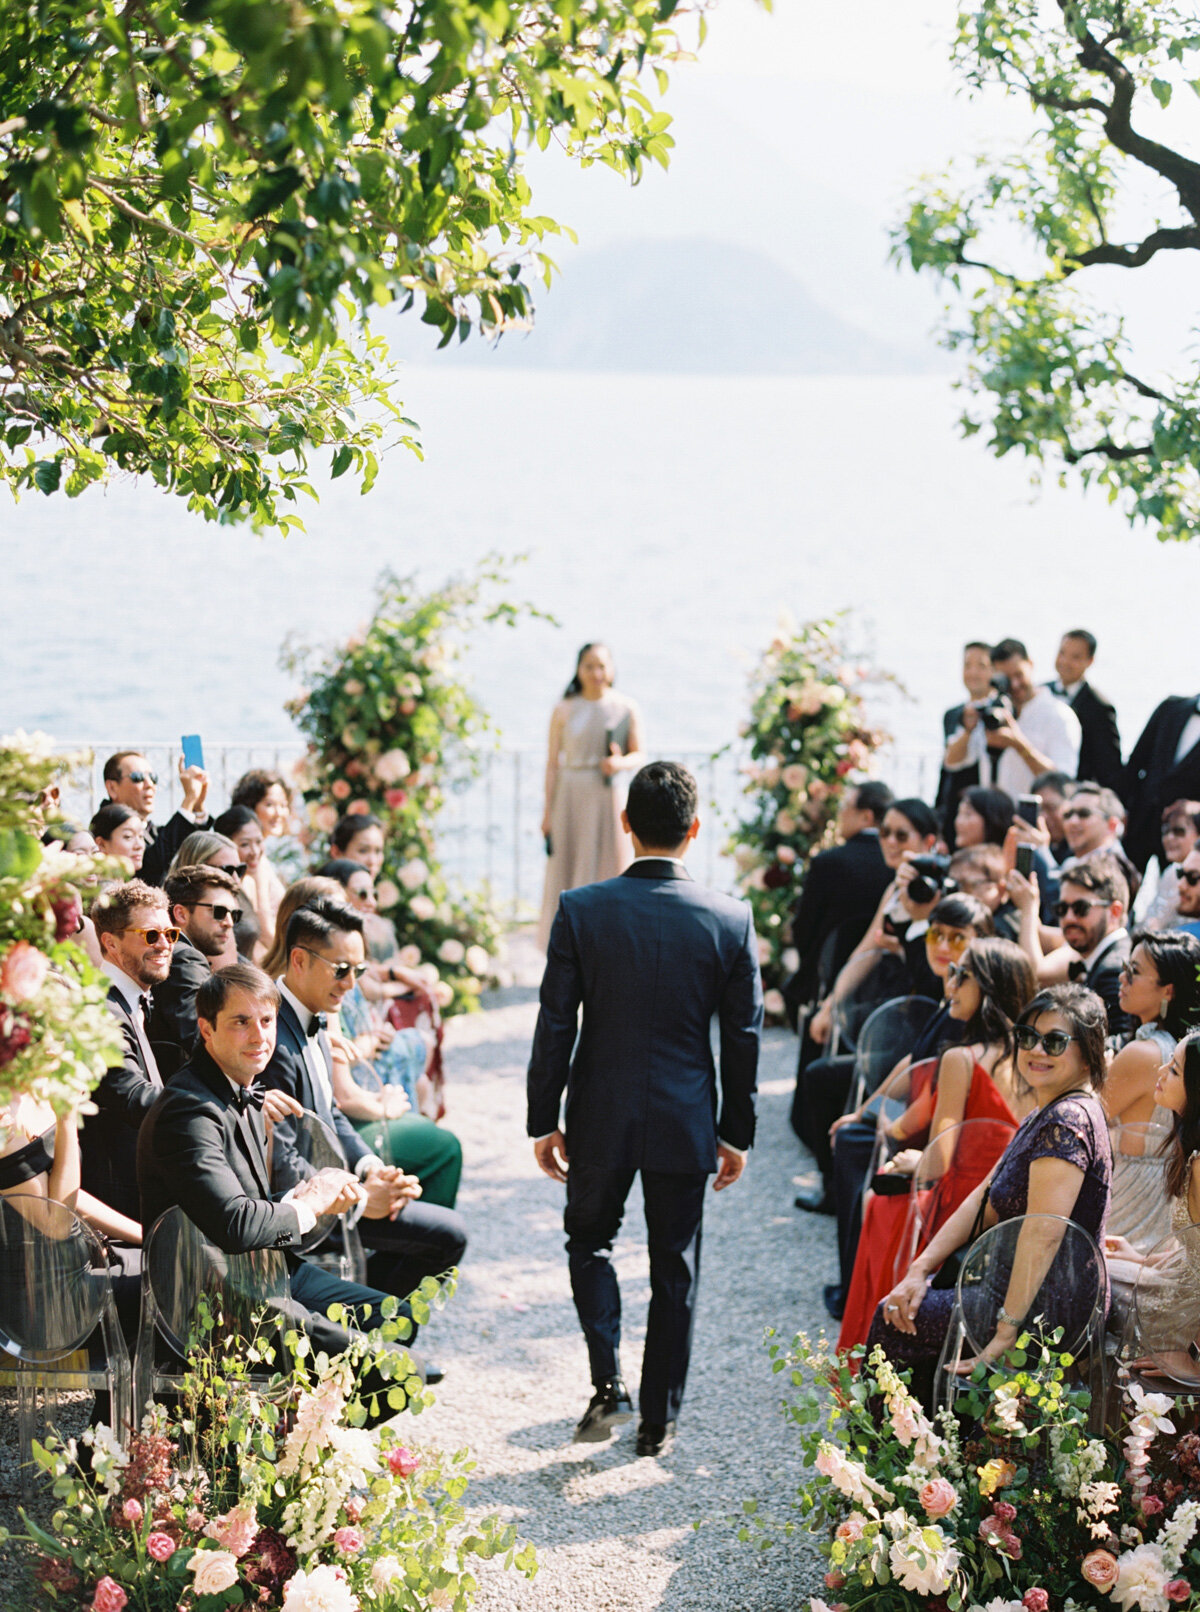 Lake-Como-Villa-Cipressi-Wedding-Katie-Grant-destination-wedding (48 of 93).jpg